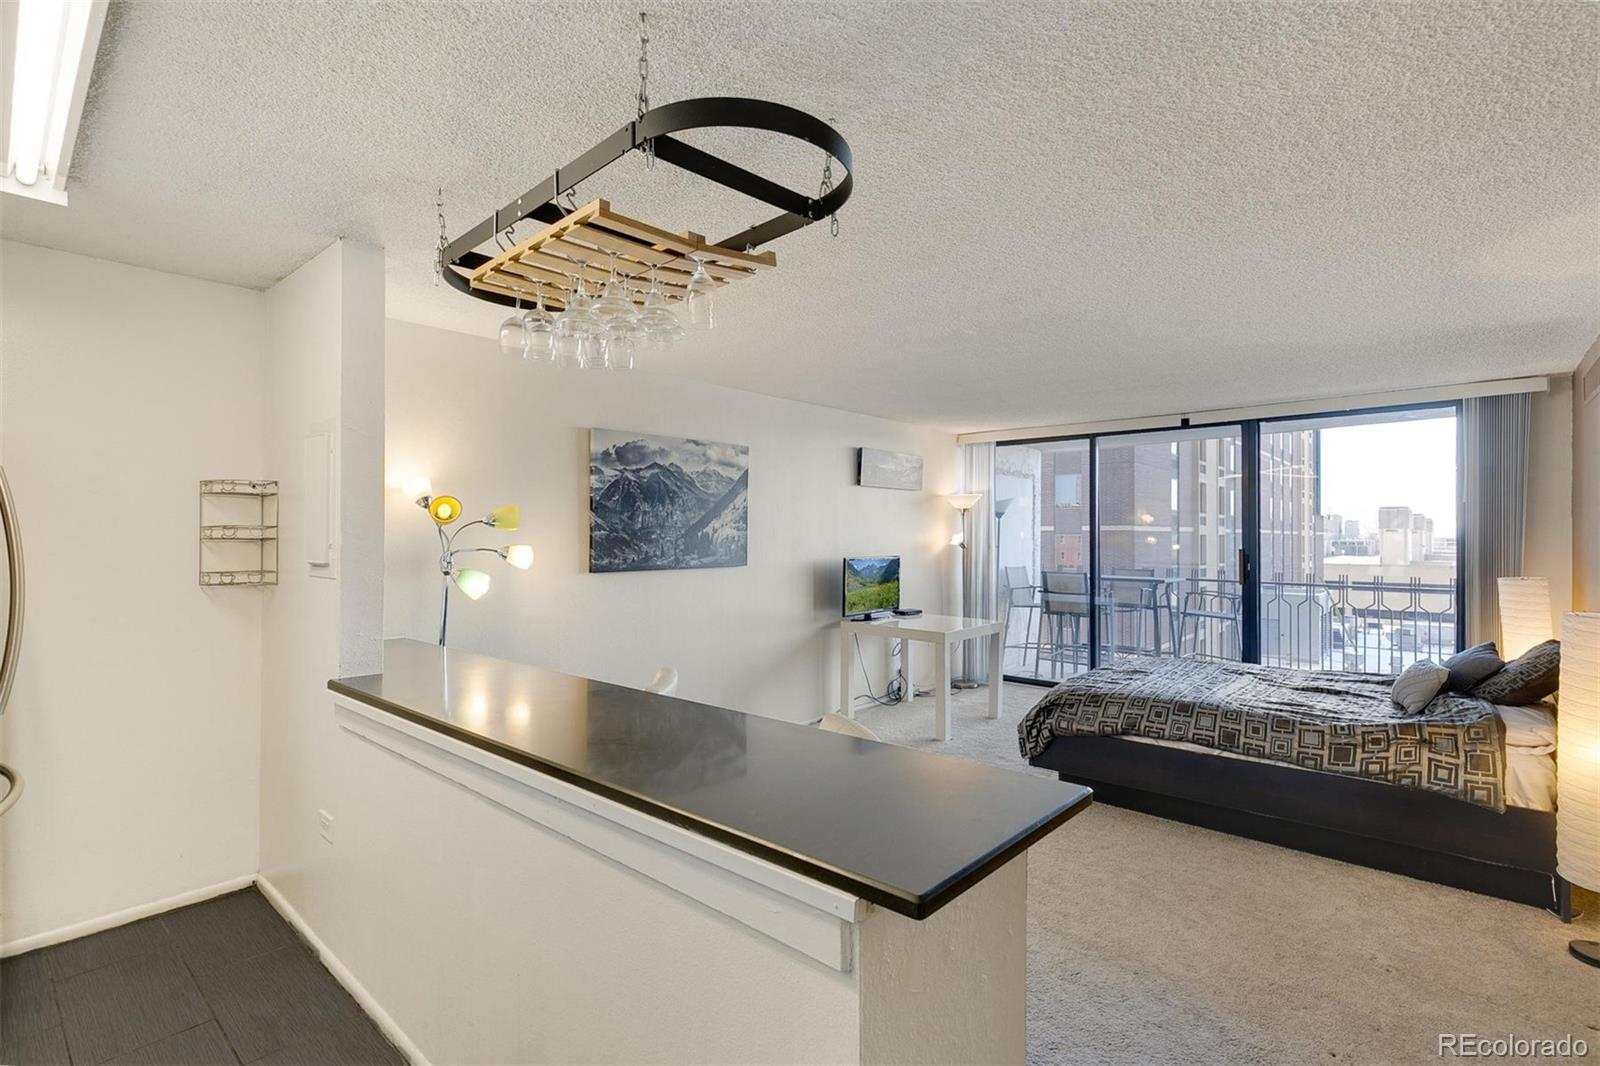 Studio for sale in the heart of Downtown Denver! This unit features a fully remodeled kitchen with new cabinets, quartz countertops, breakfast bar, stainless steel appliances, and tile floor. There is a walk-in closet featuring built-in shelving with plenty of room for storage. Unit has a balcony with beautiful views of the rocky mountains that doesn't face a street. Walk to 16th Street Mall, Pepsi Center, Union Station, Denver Performing Arts Center, Coors Field, bars, restaurants and much more! Building features outdoor pool and rooftop patio, fitness center, conference room, and laundry room. Urban living at an affordable price.